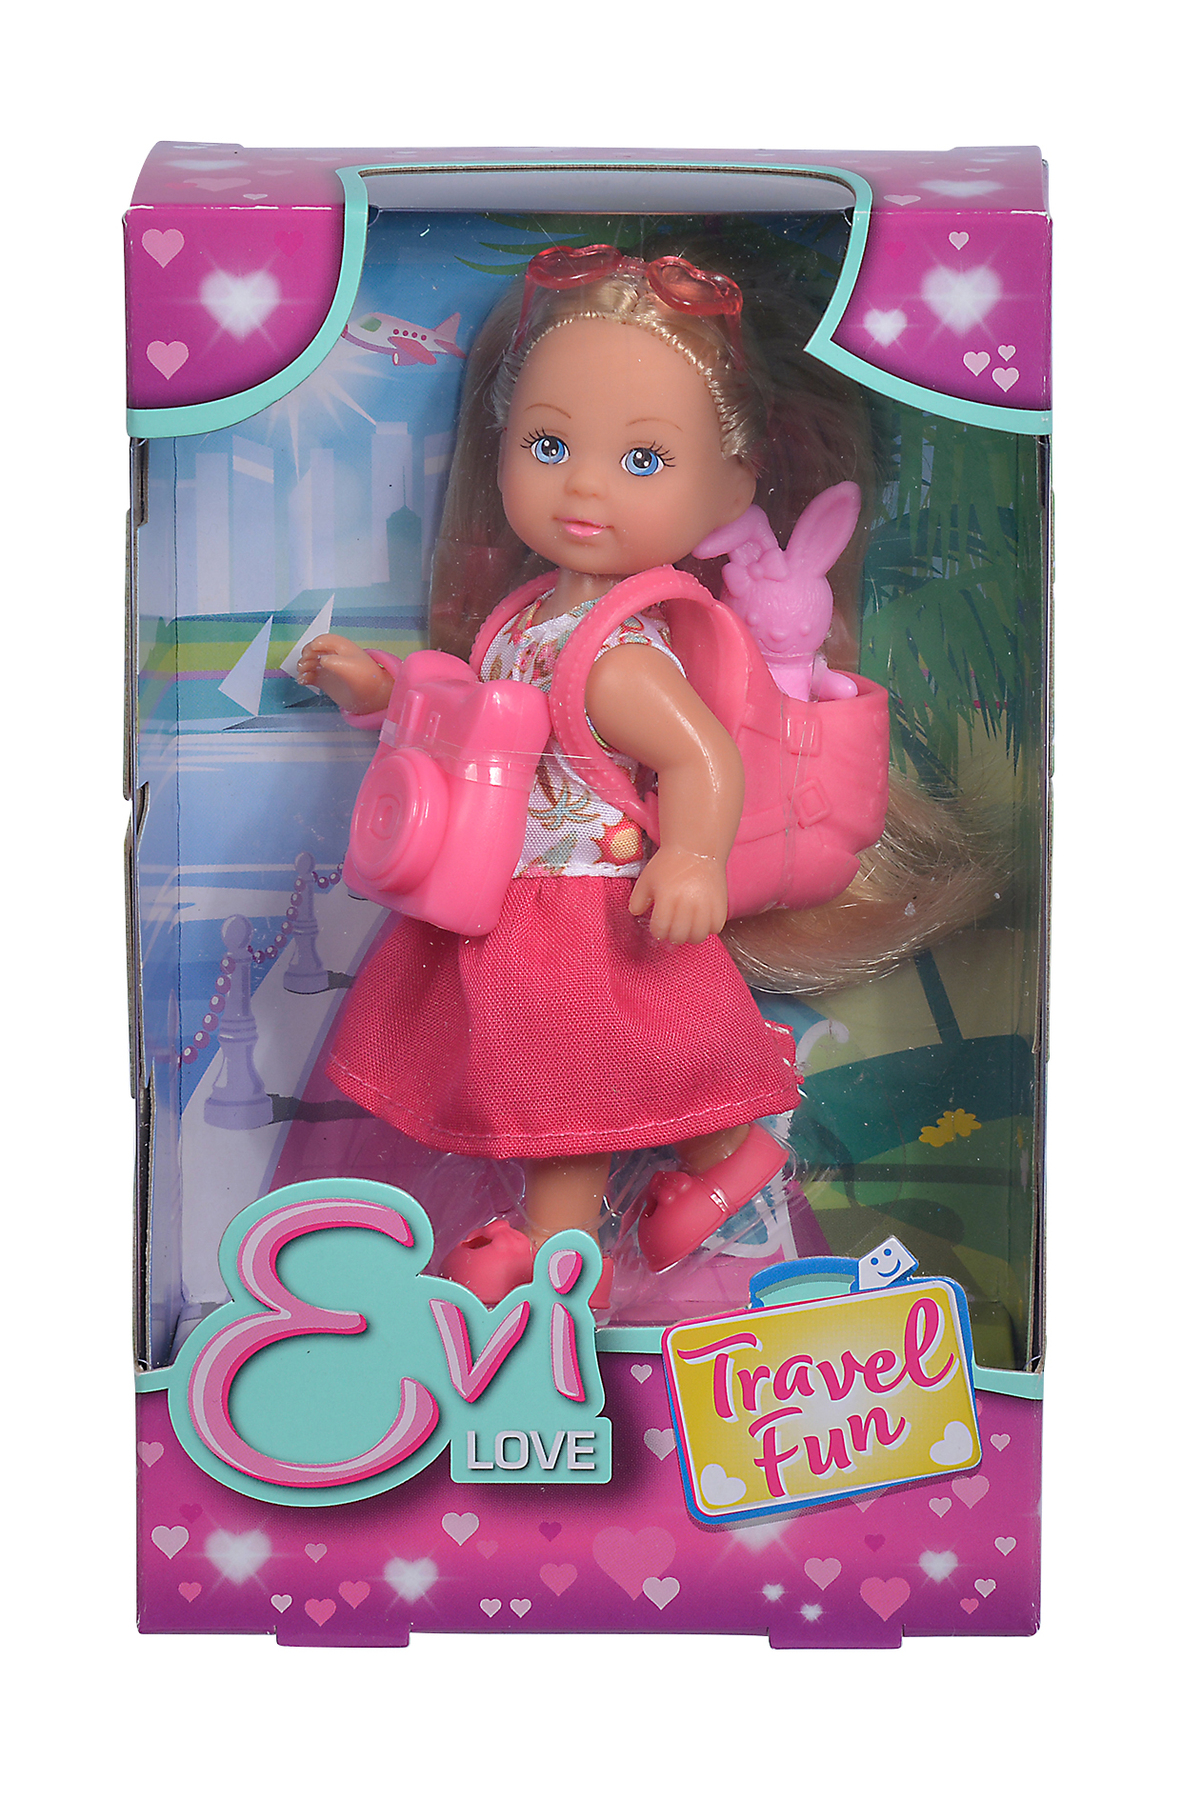 Evi Love Puppe Travel Fun 12cm